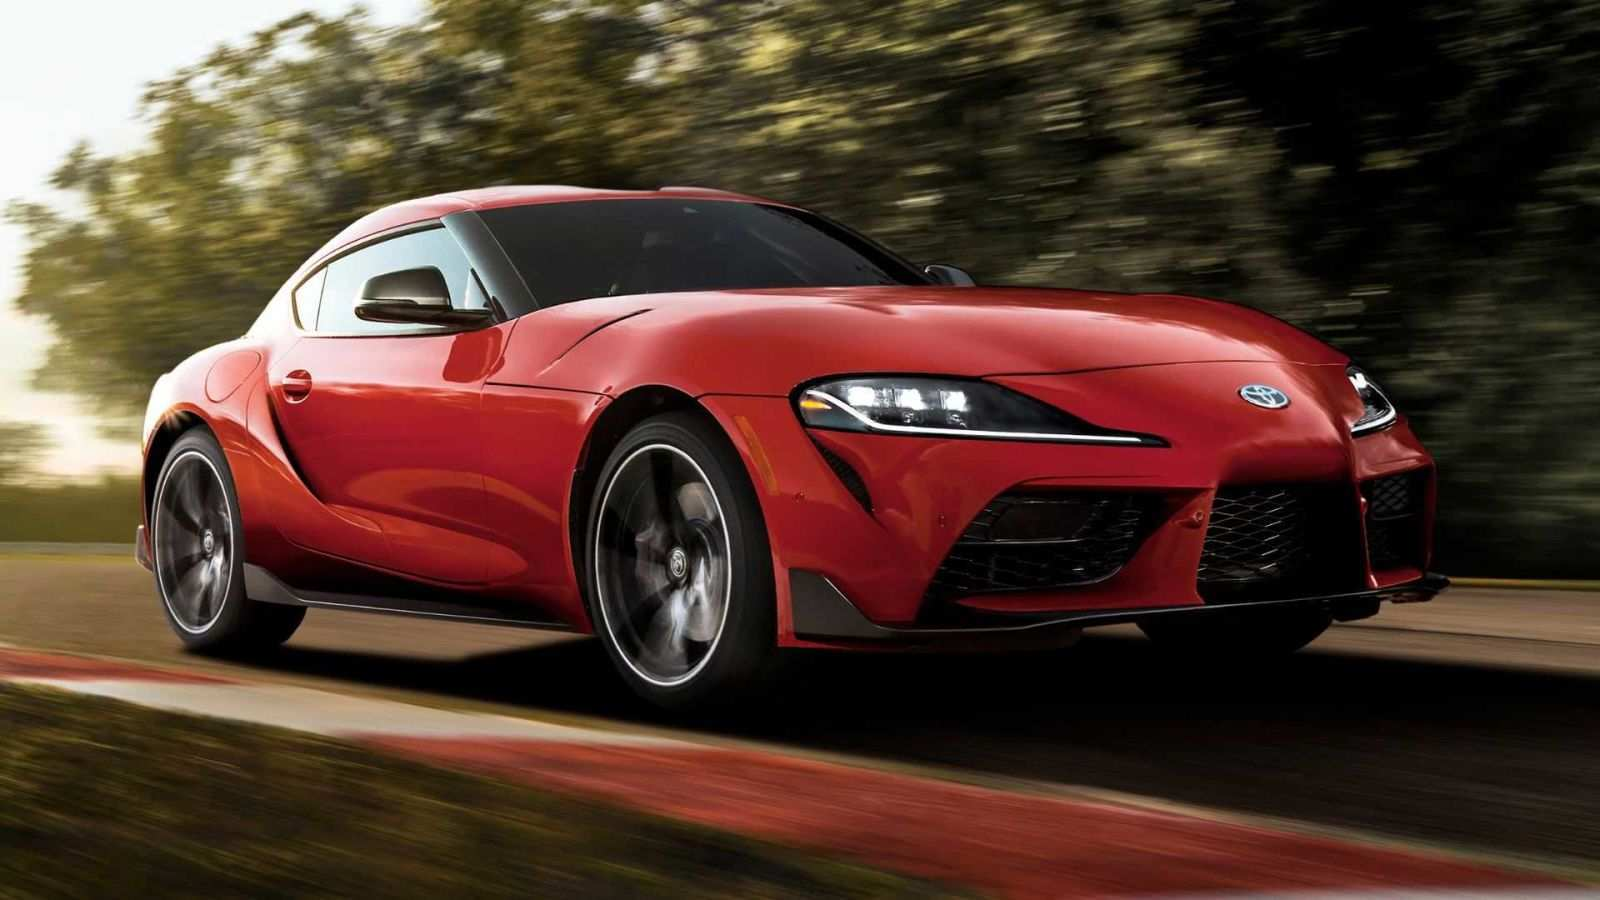 68 New 2020 Toyota Supra Quarter Mile Concept